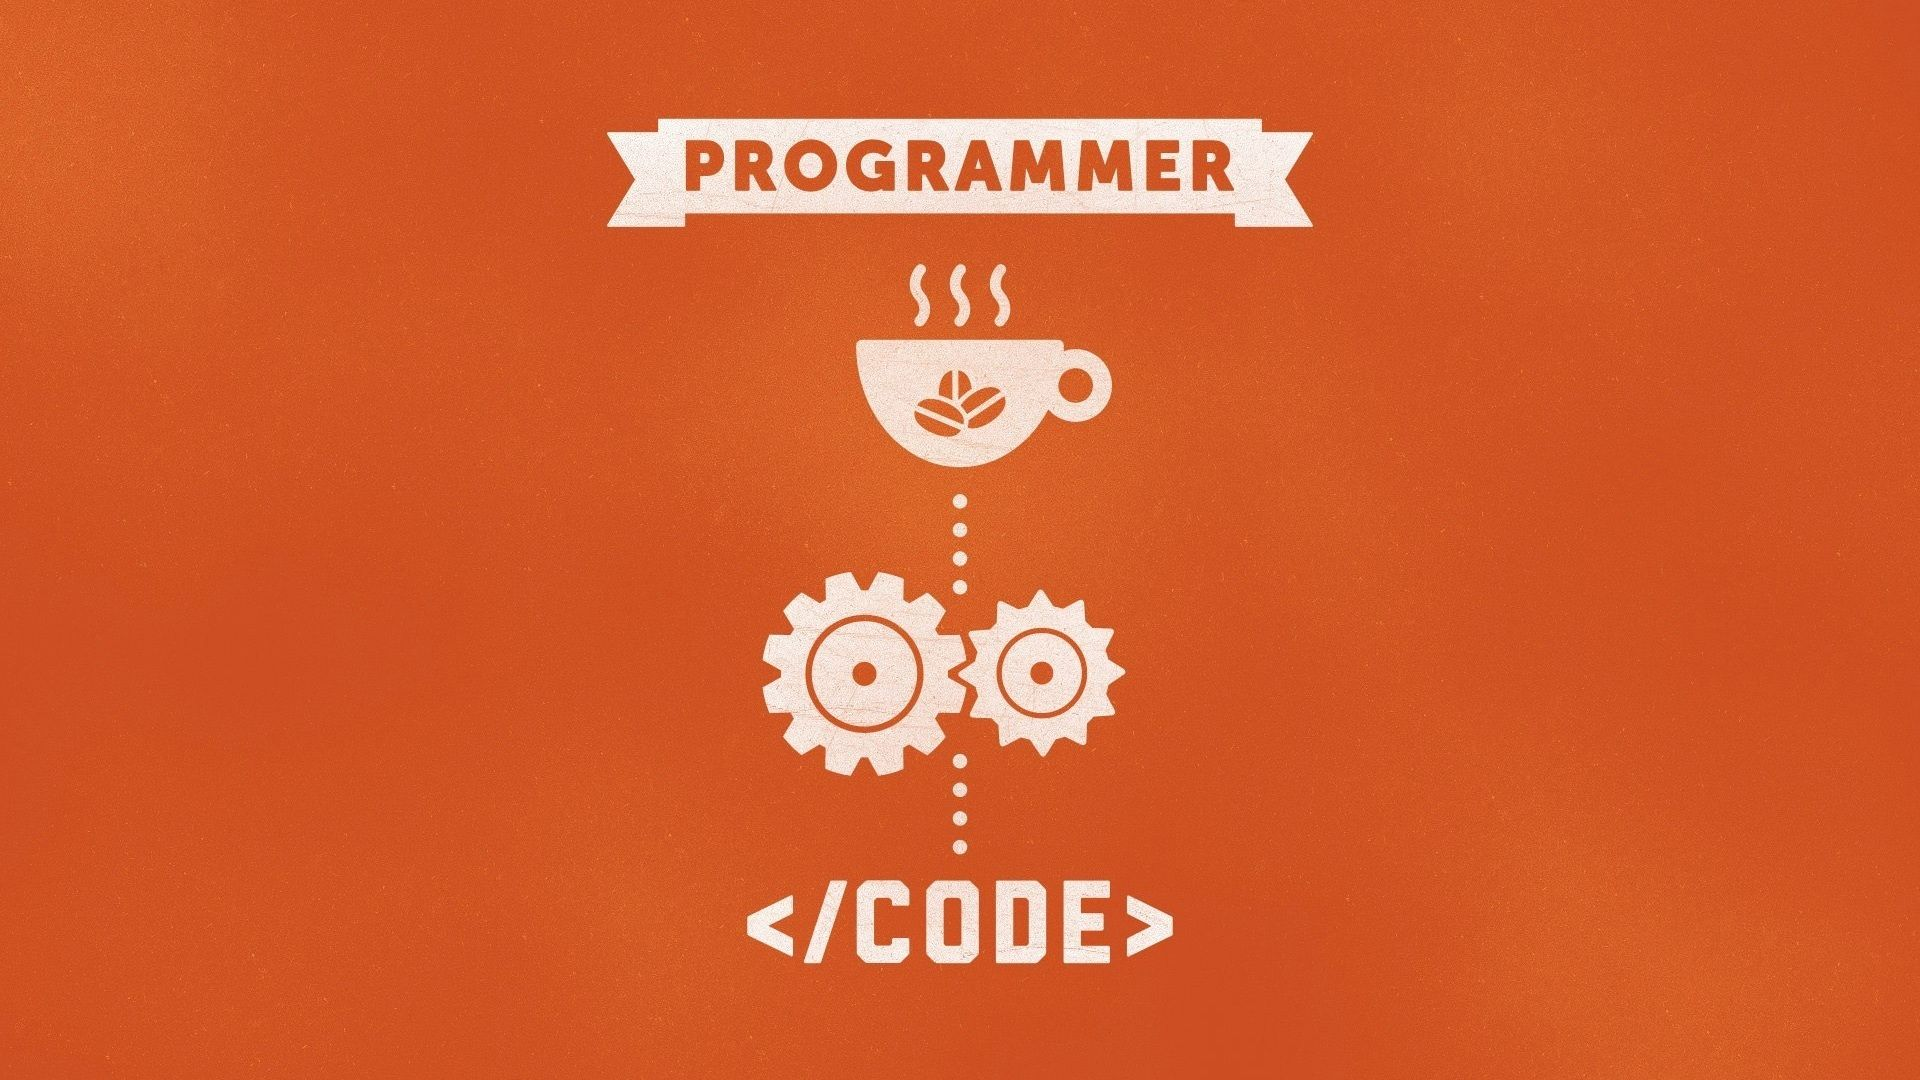 Coding wallpaper background